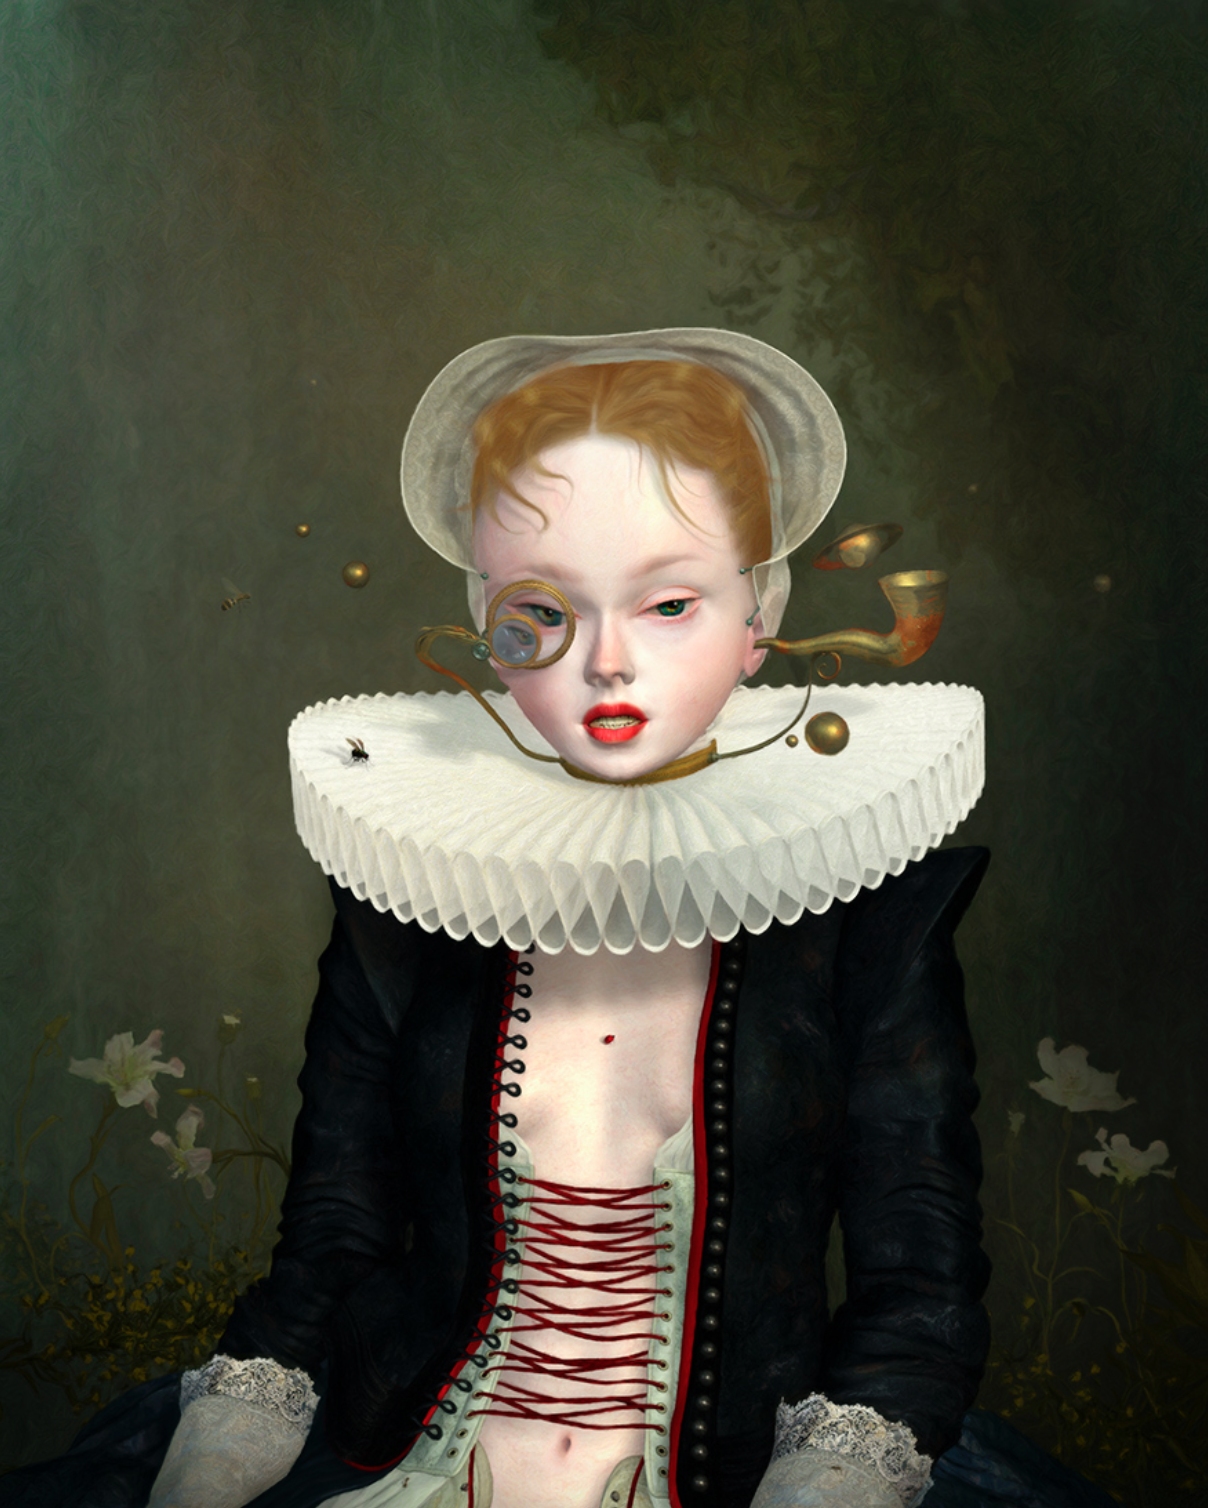 Sol - Courtesy of Ray Caesar/Gallery House